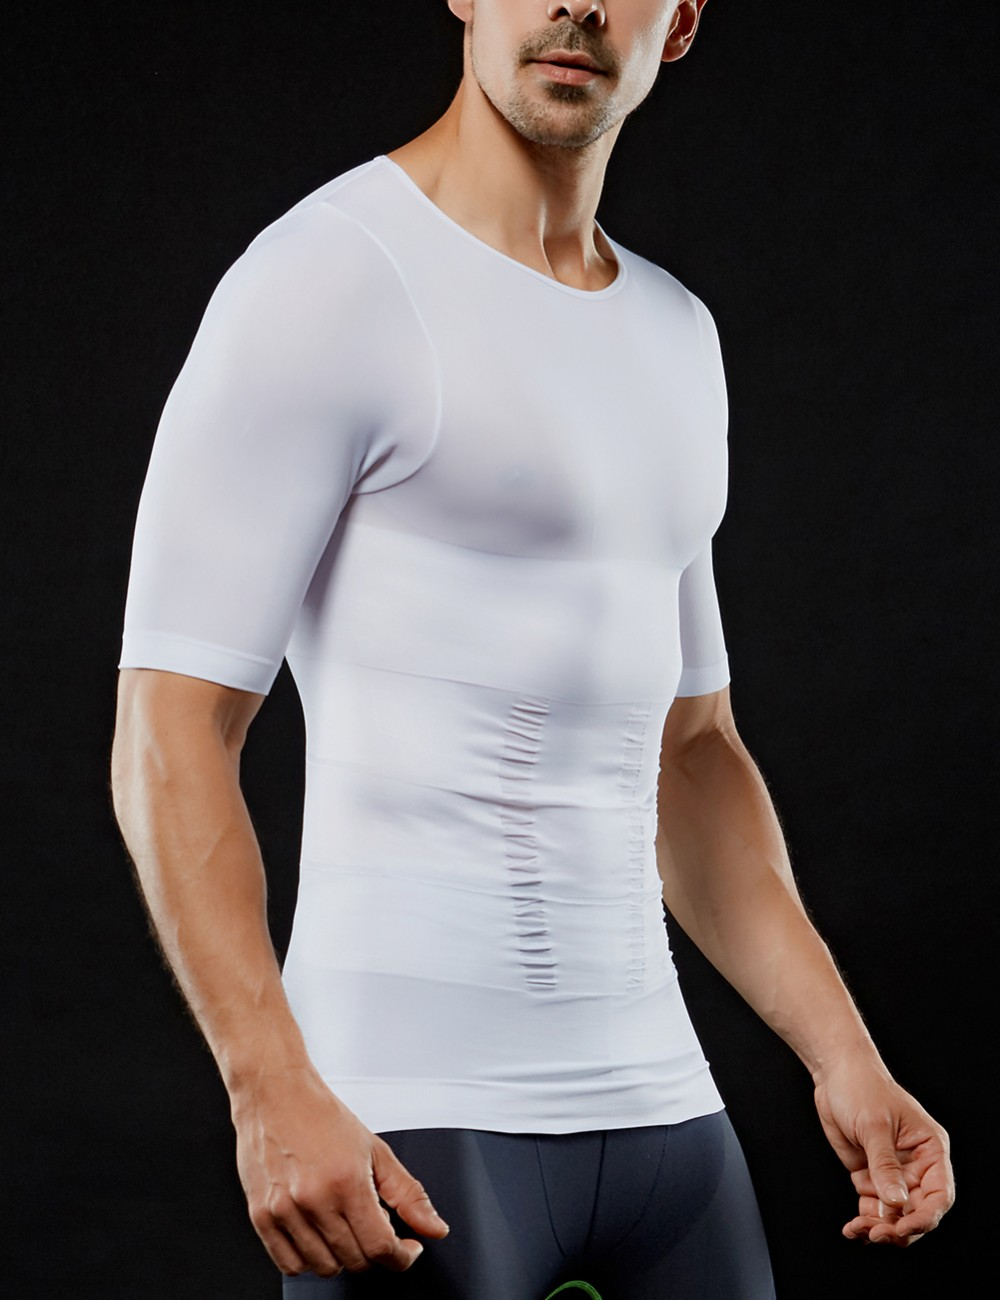 Tummy Control White 2 Layers Threaded Cuff Men's Top Slimmer Affordable